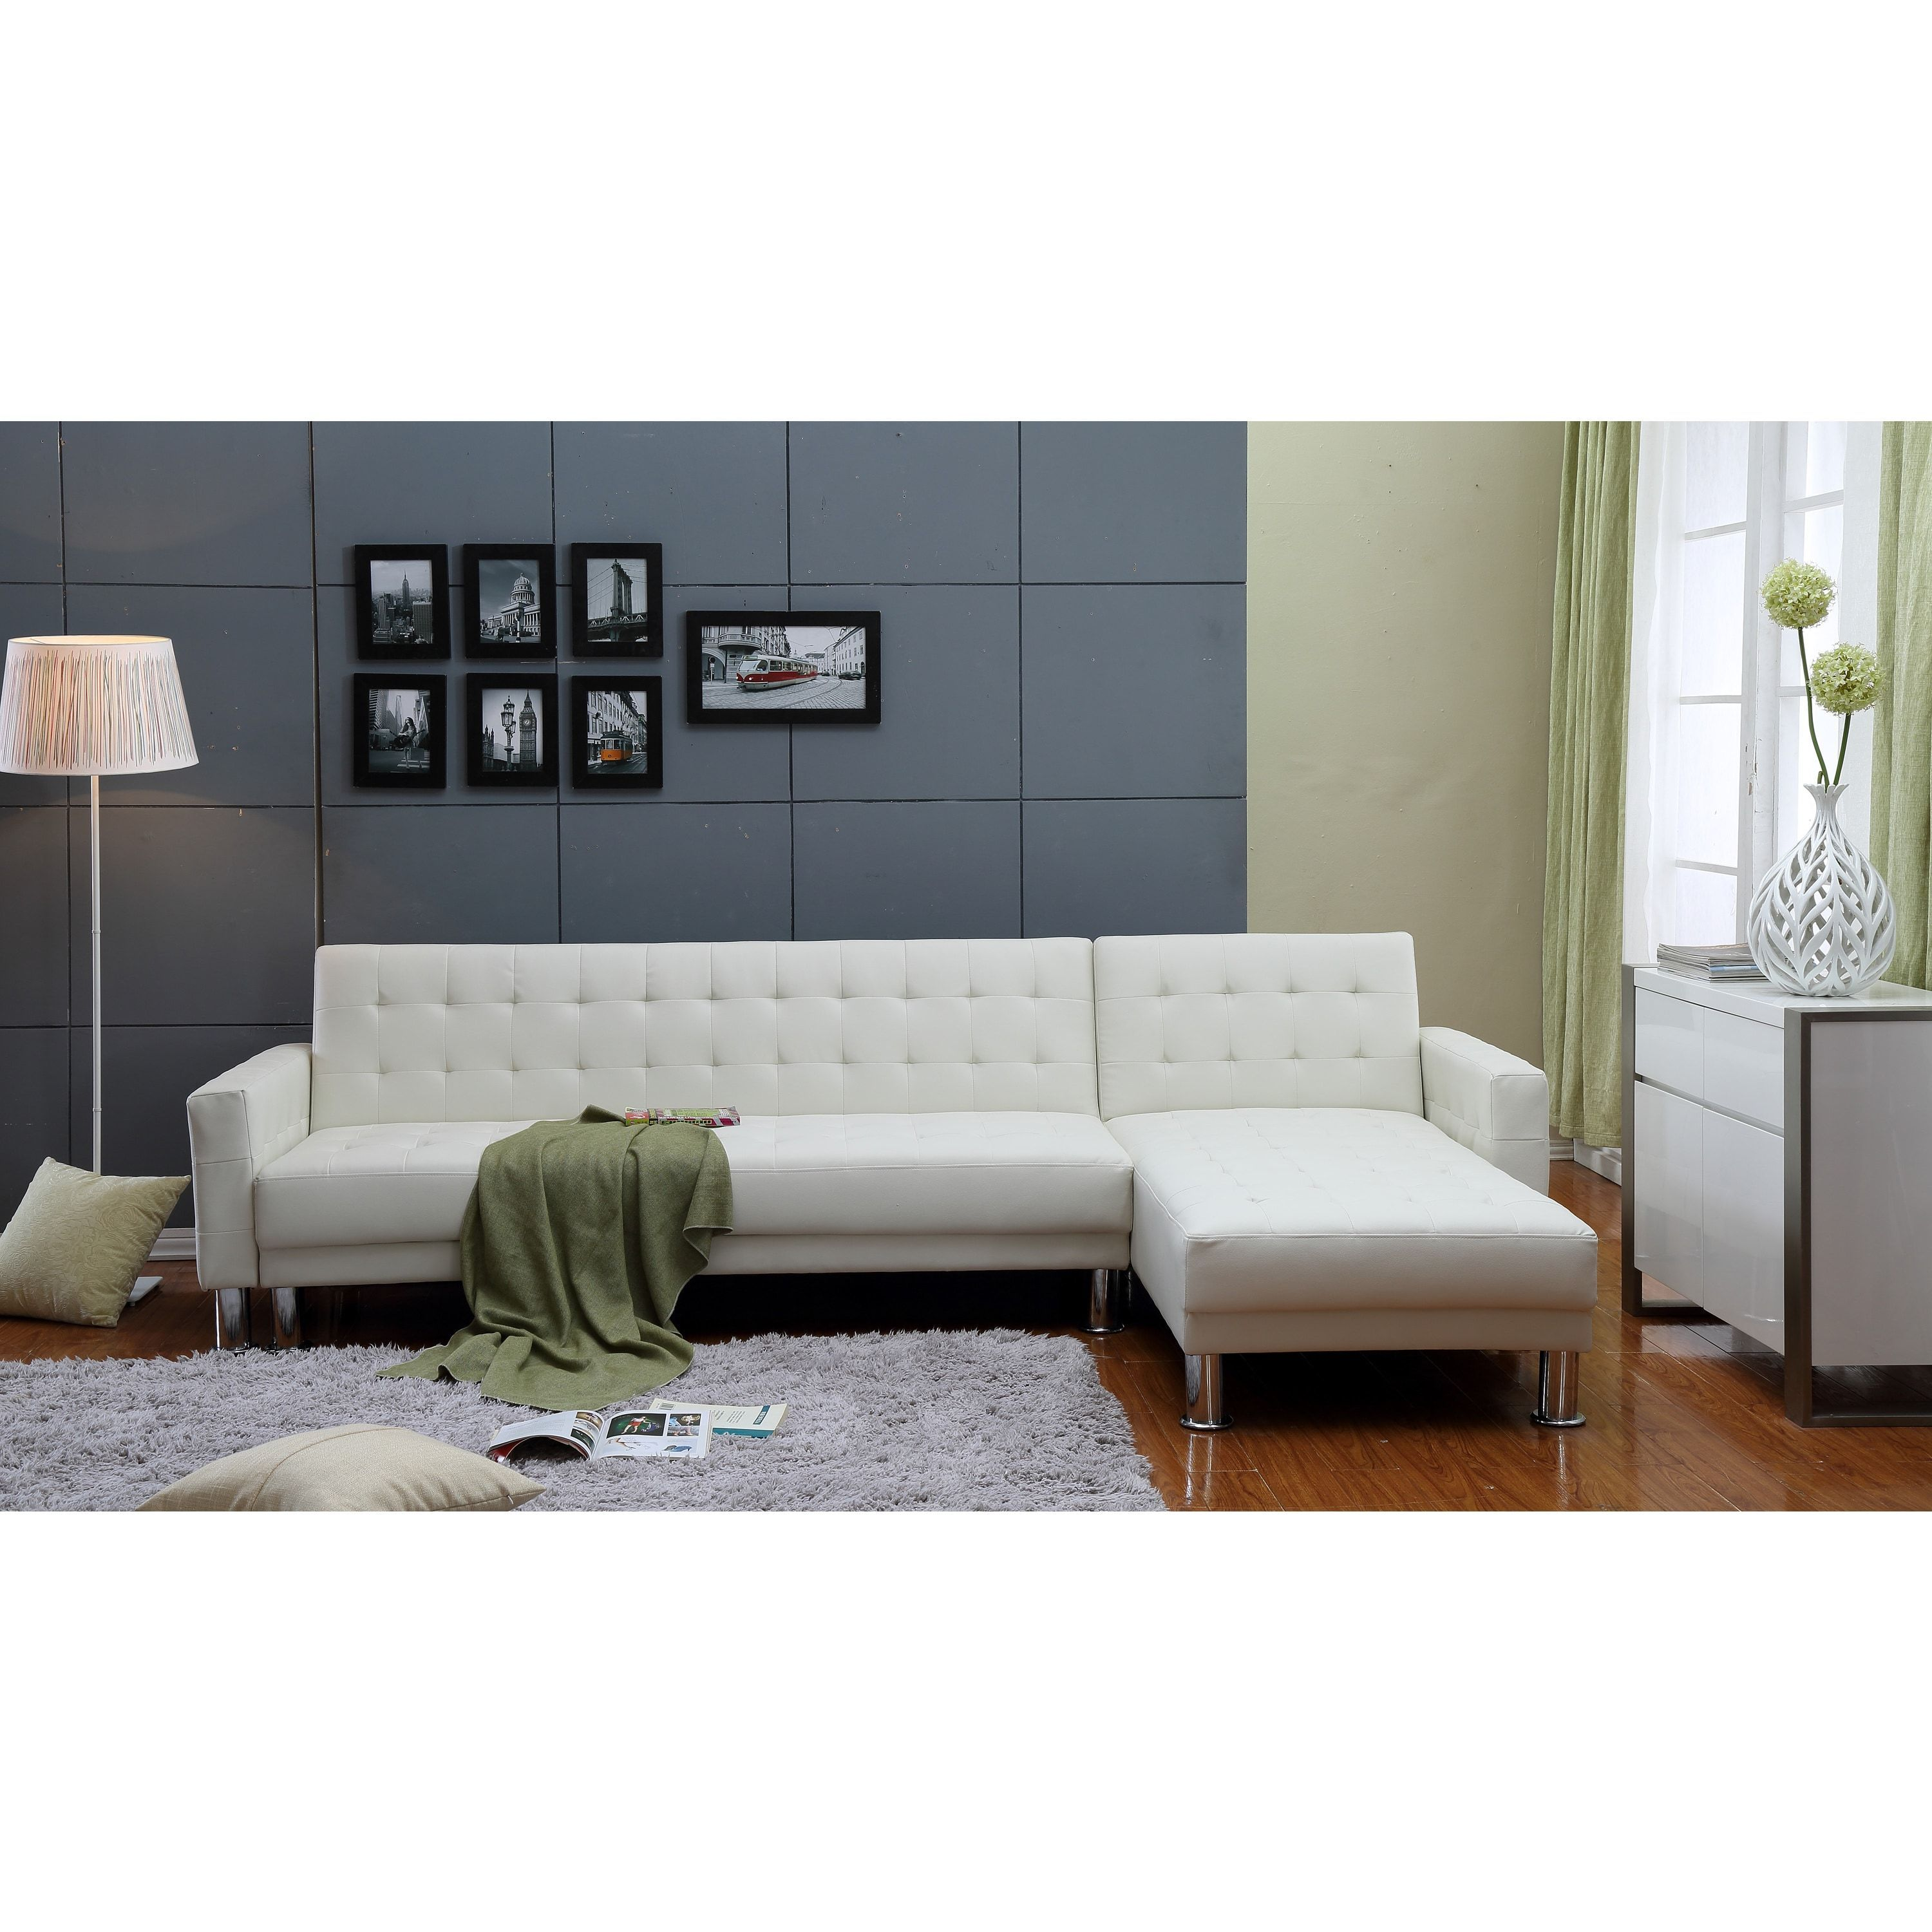 Tufted Leather Sofa Bed: 2-piece White Tufted Bi-cast Leather Sectional Sofa Bed